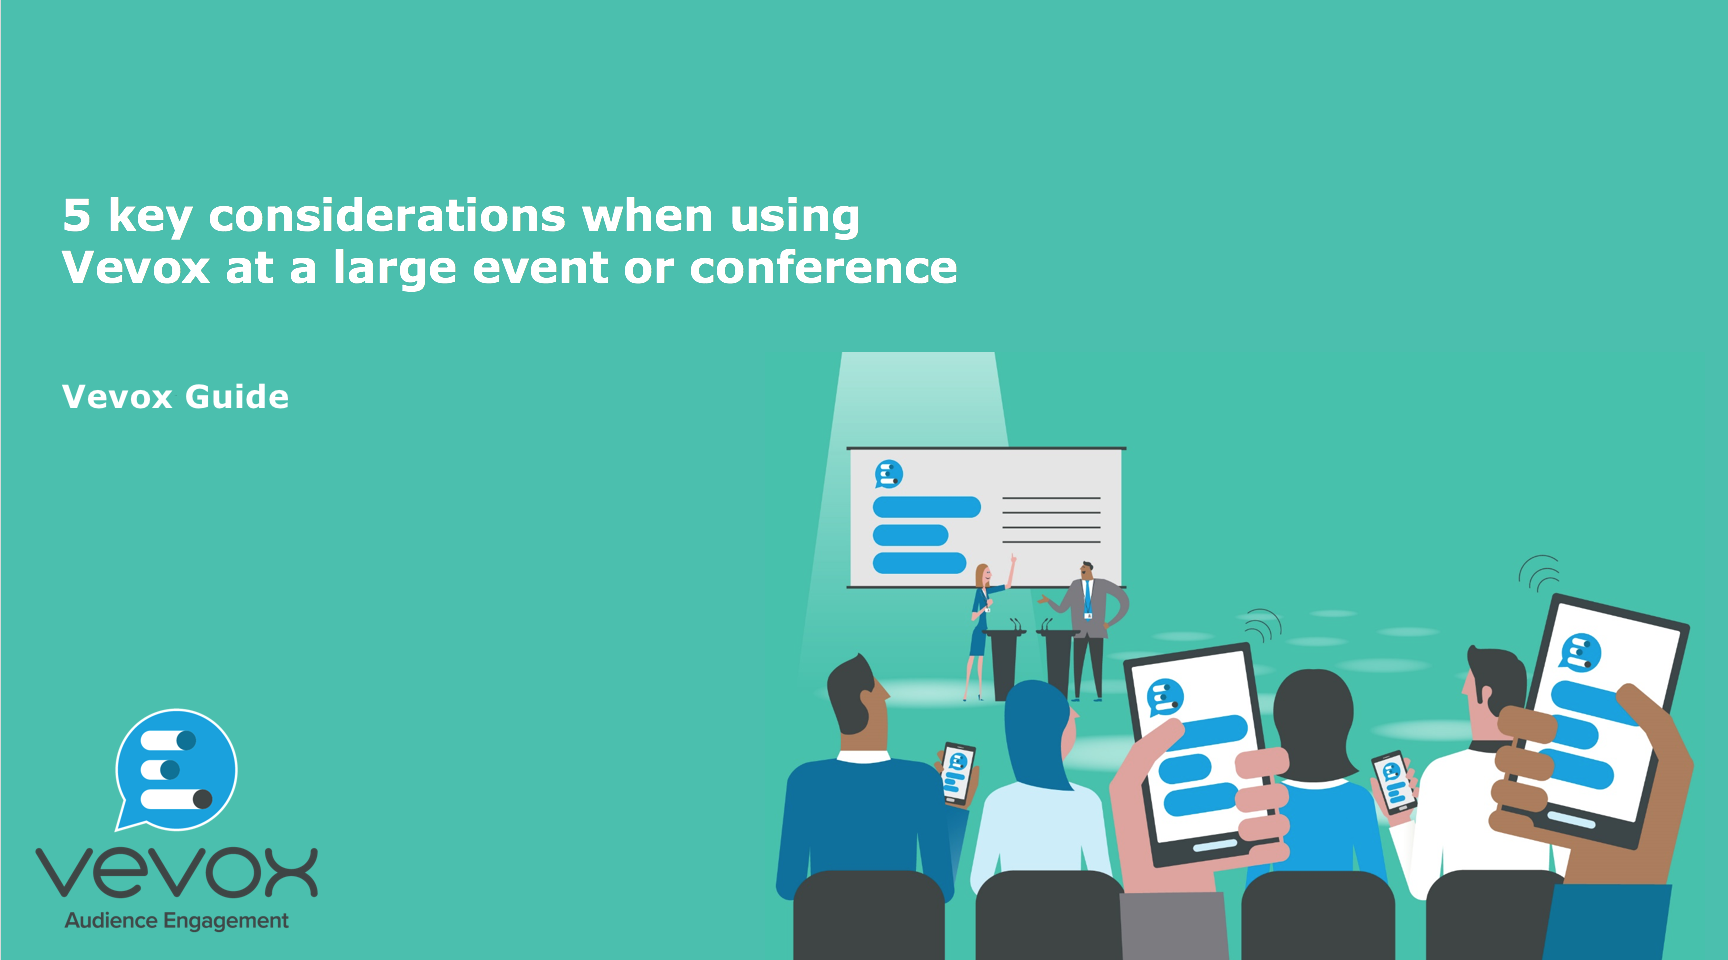 A guide for using Vevox at large meetings and events